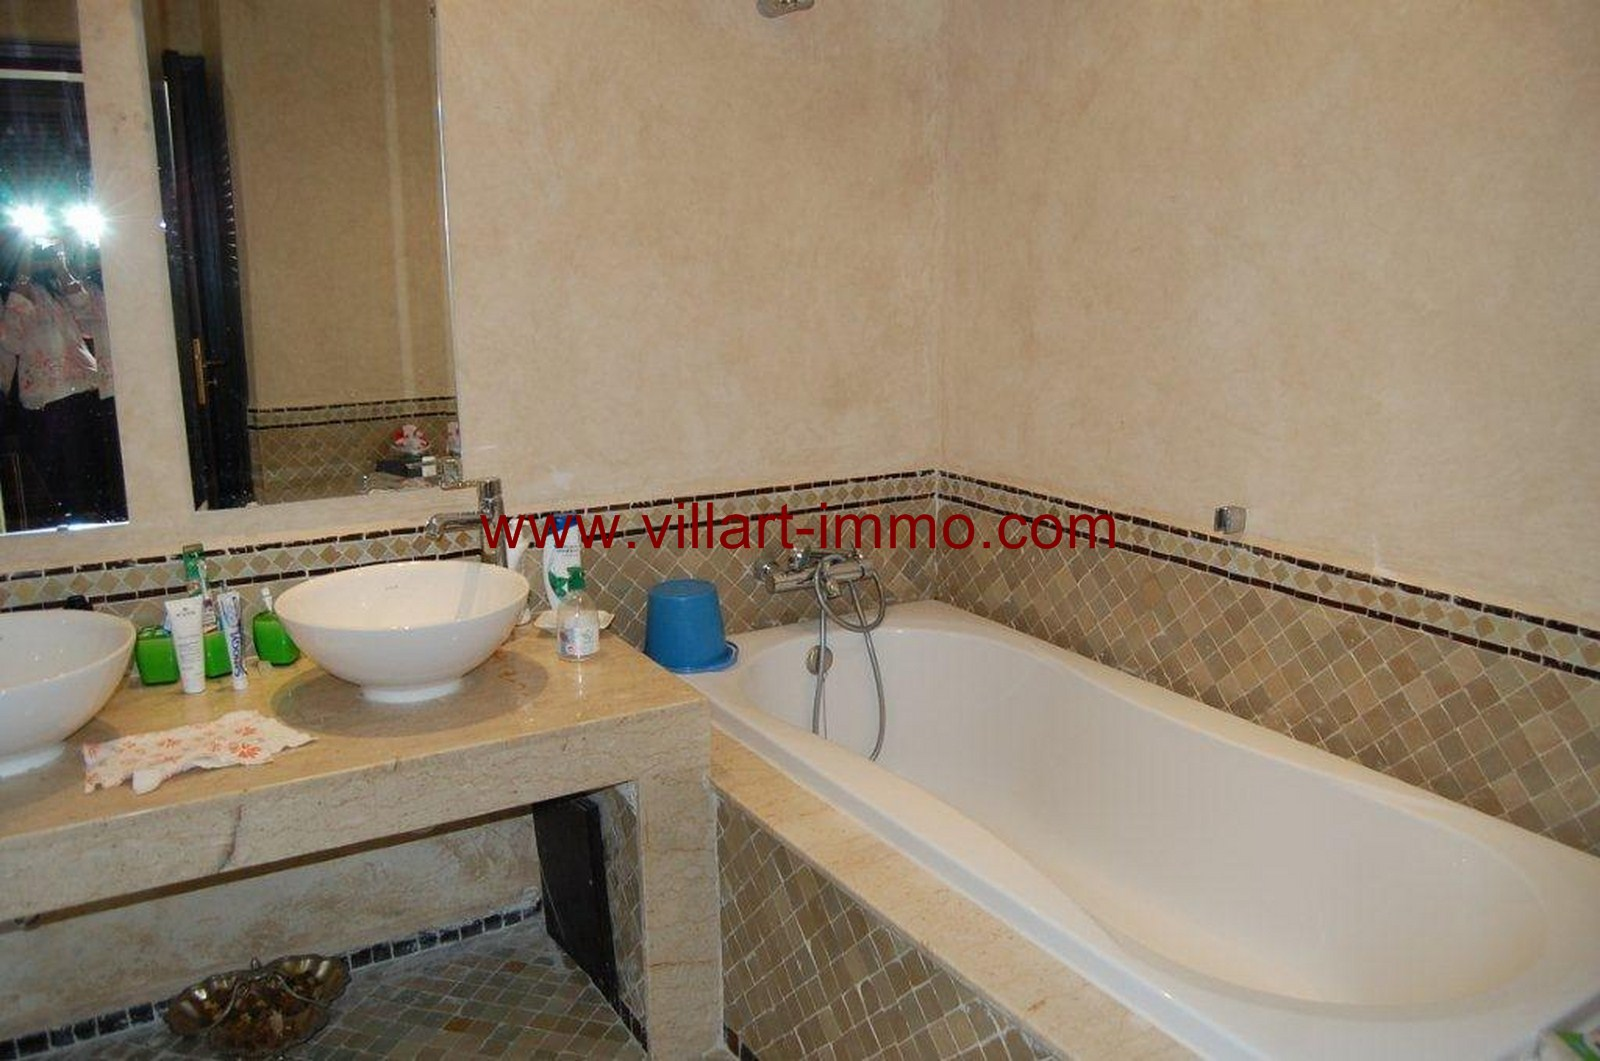 8-For-Sale-Villa-Tangier-Malabata-Bathroom 1-VV354-Villart Immo